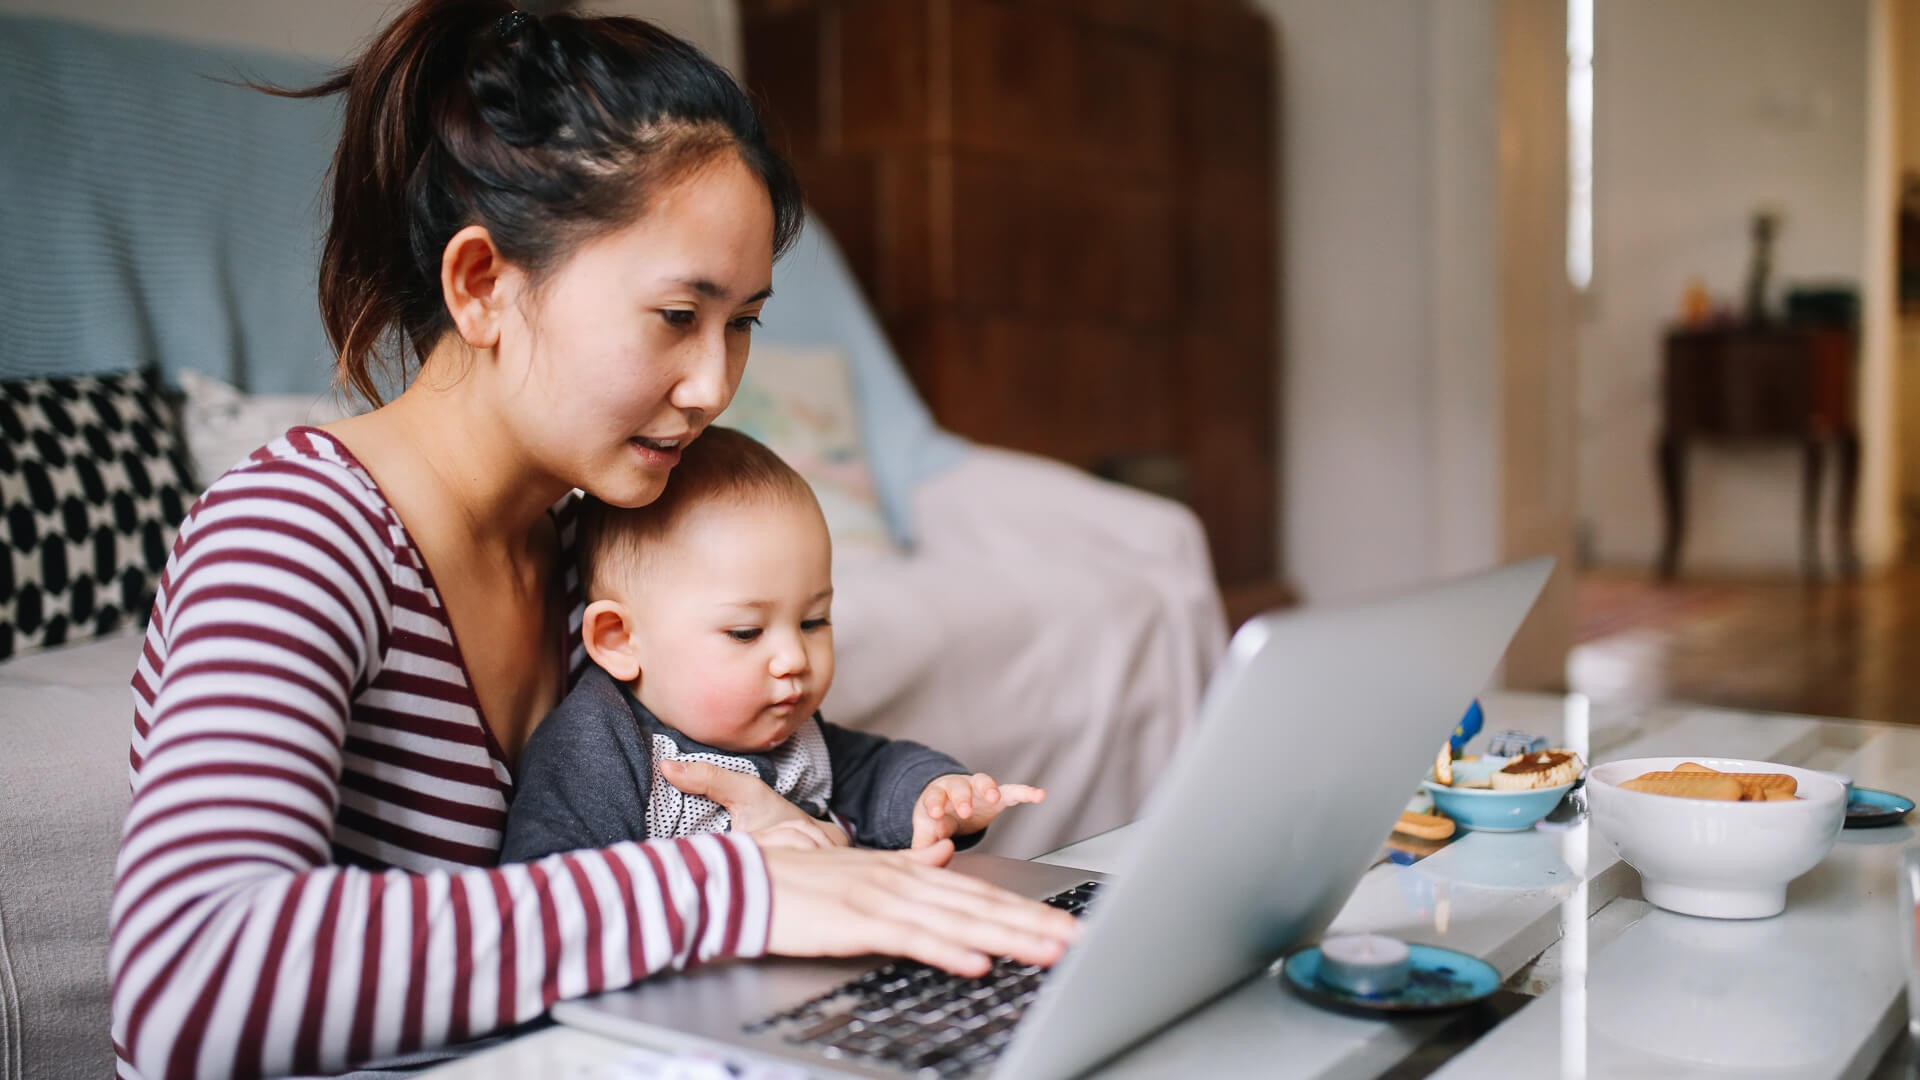 Portrait of a young Asian woman sitting at home, doing some freelance job while taking care of her little baby boy.